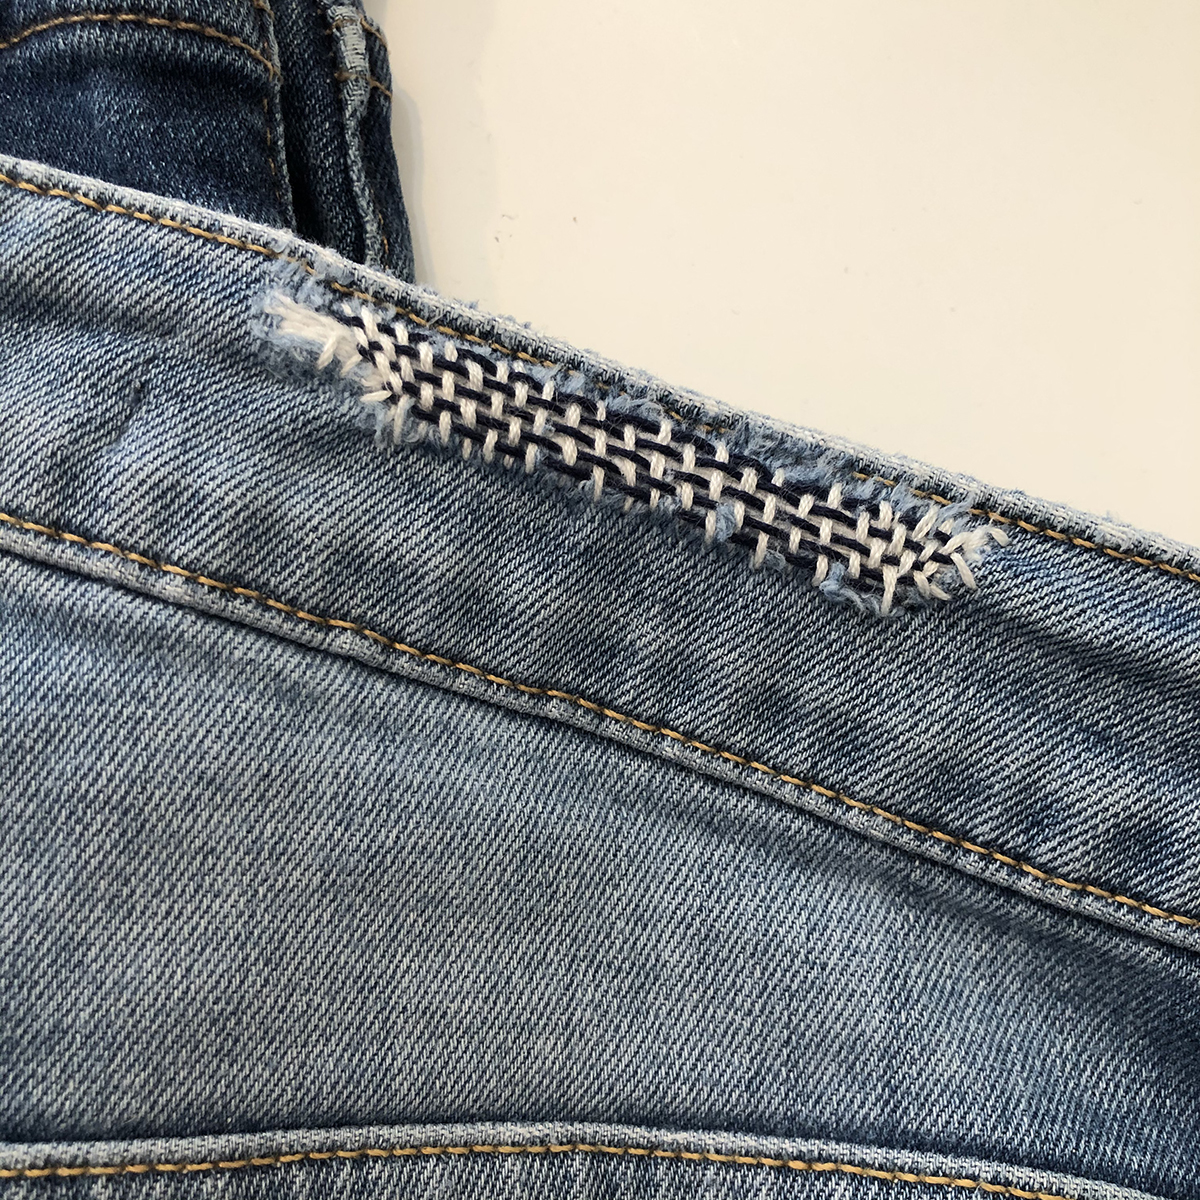 Jeans Tips Mending Darning Patching And Repair Weallsew